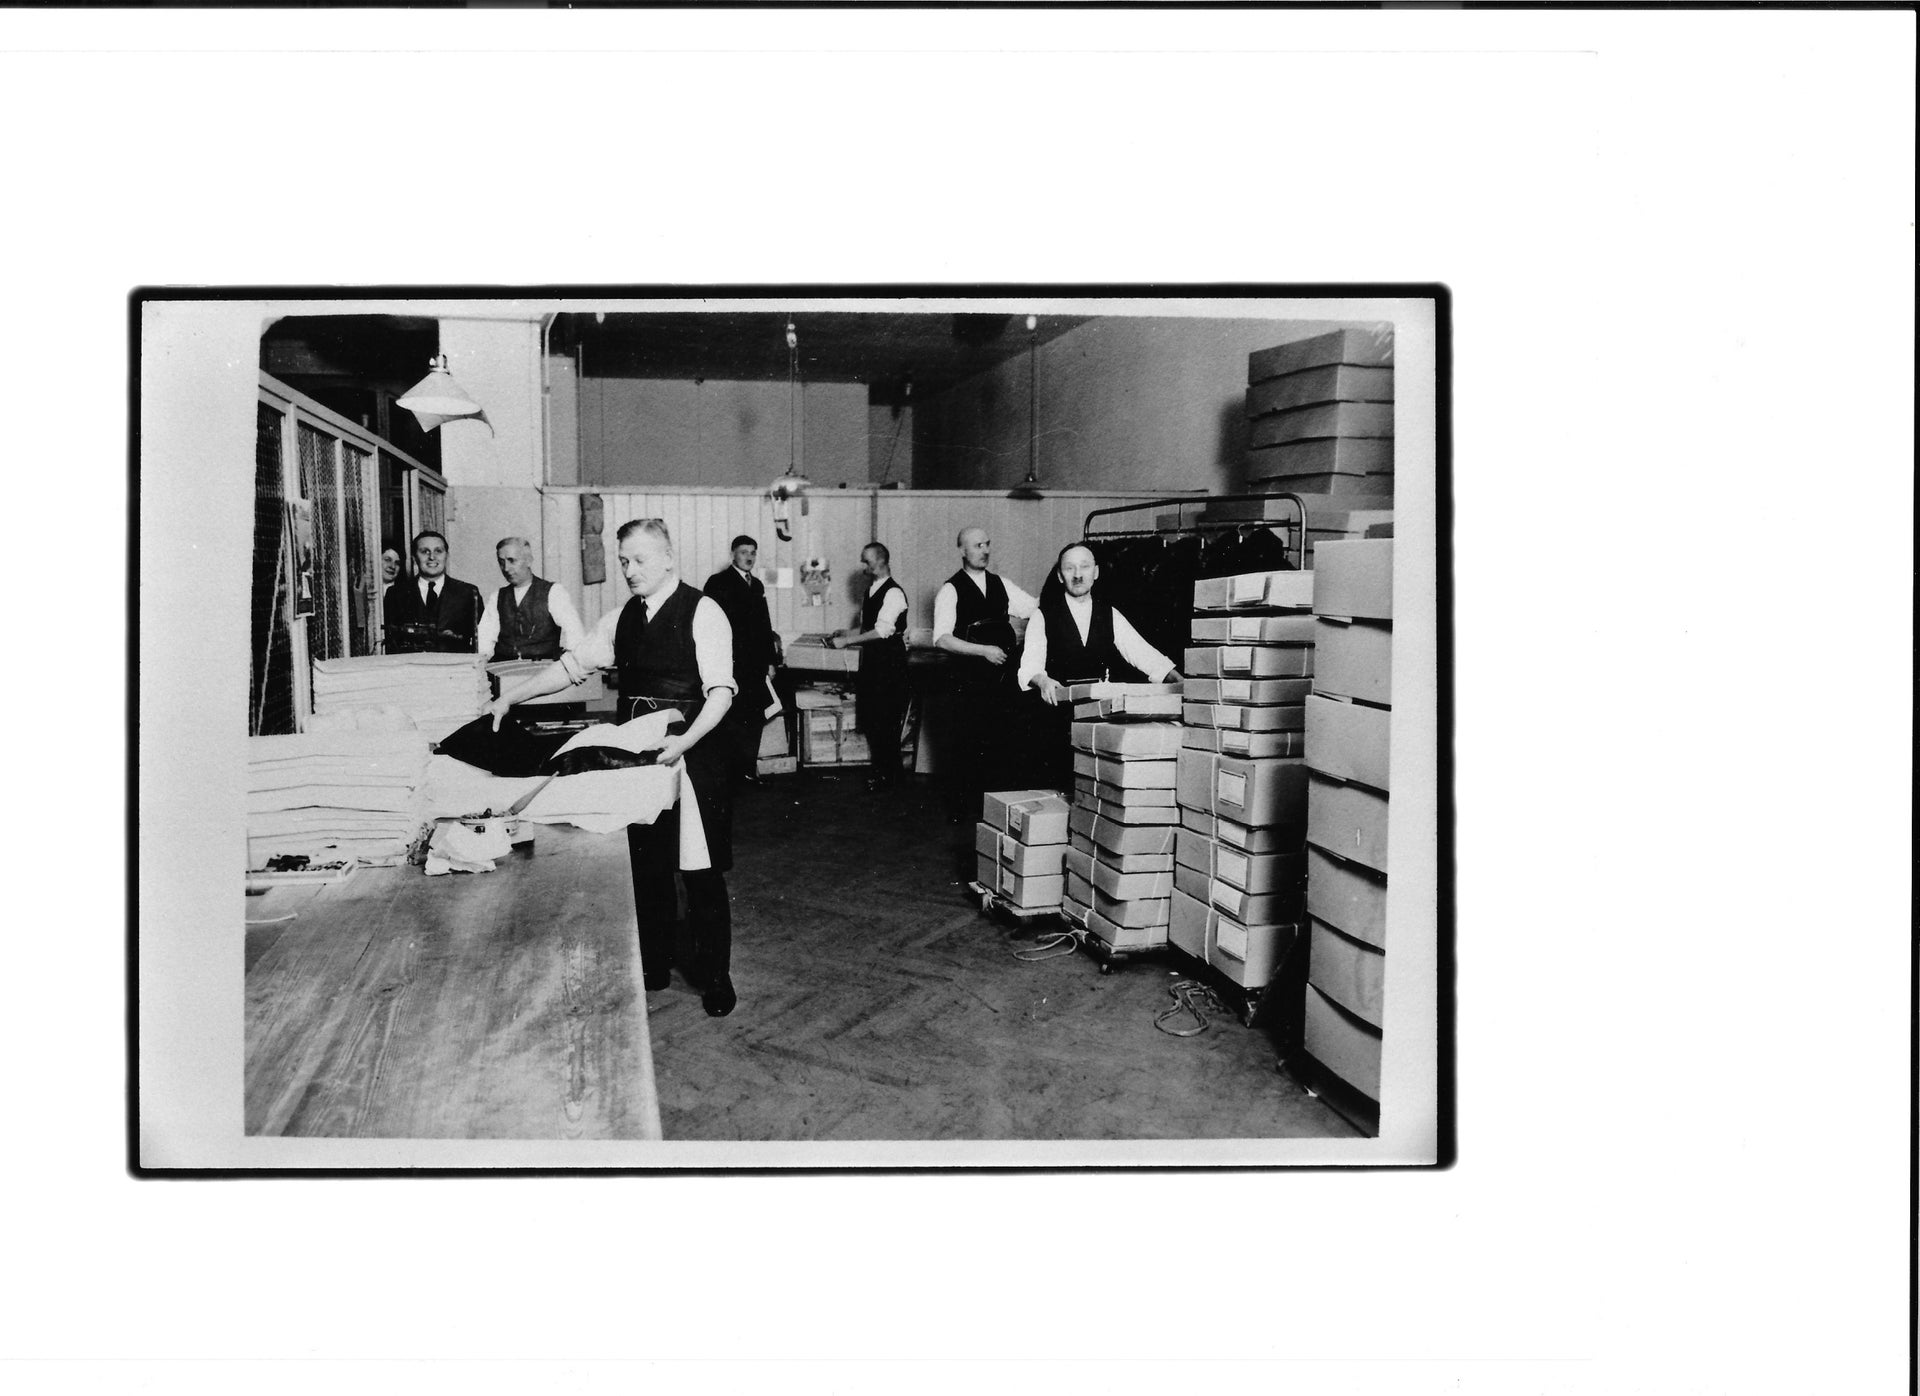 One of the final photographs taken of staff at Leopold Seligman before it was forced into liquidation by Nazi officials in 1935. Seligman left for London and later resettled in New Mexico.